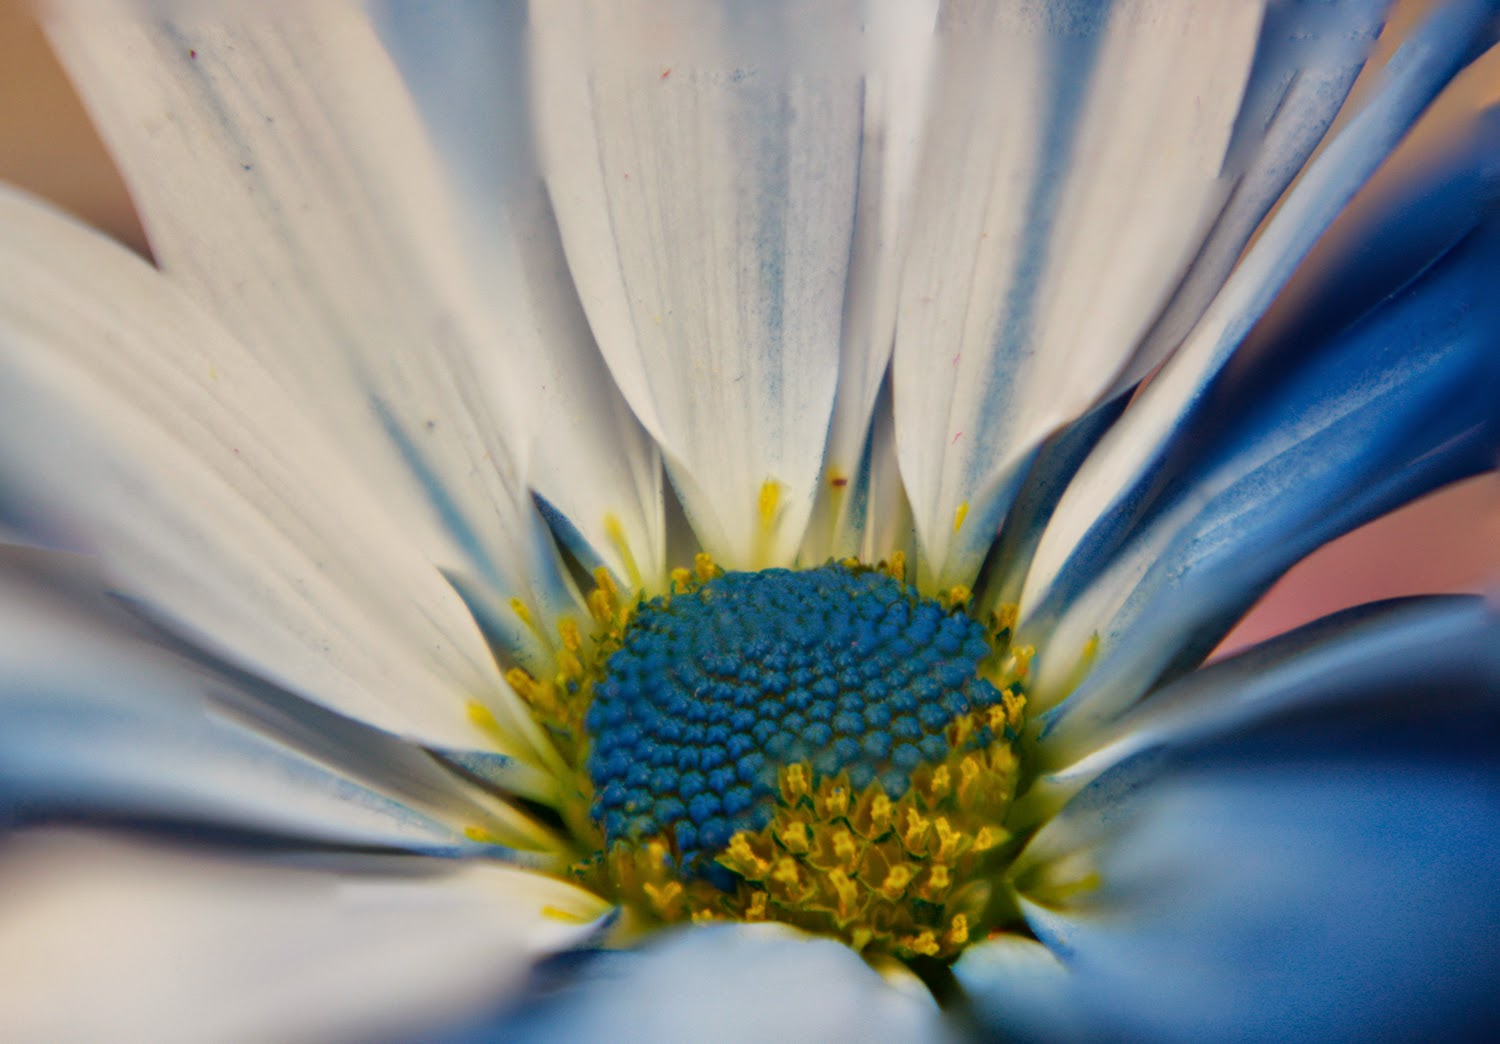 Focus Stacked Photograph of a Close-Up Flower | Boost Your Photography